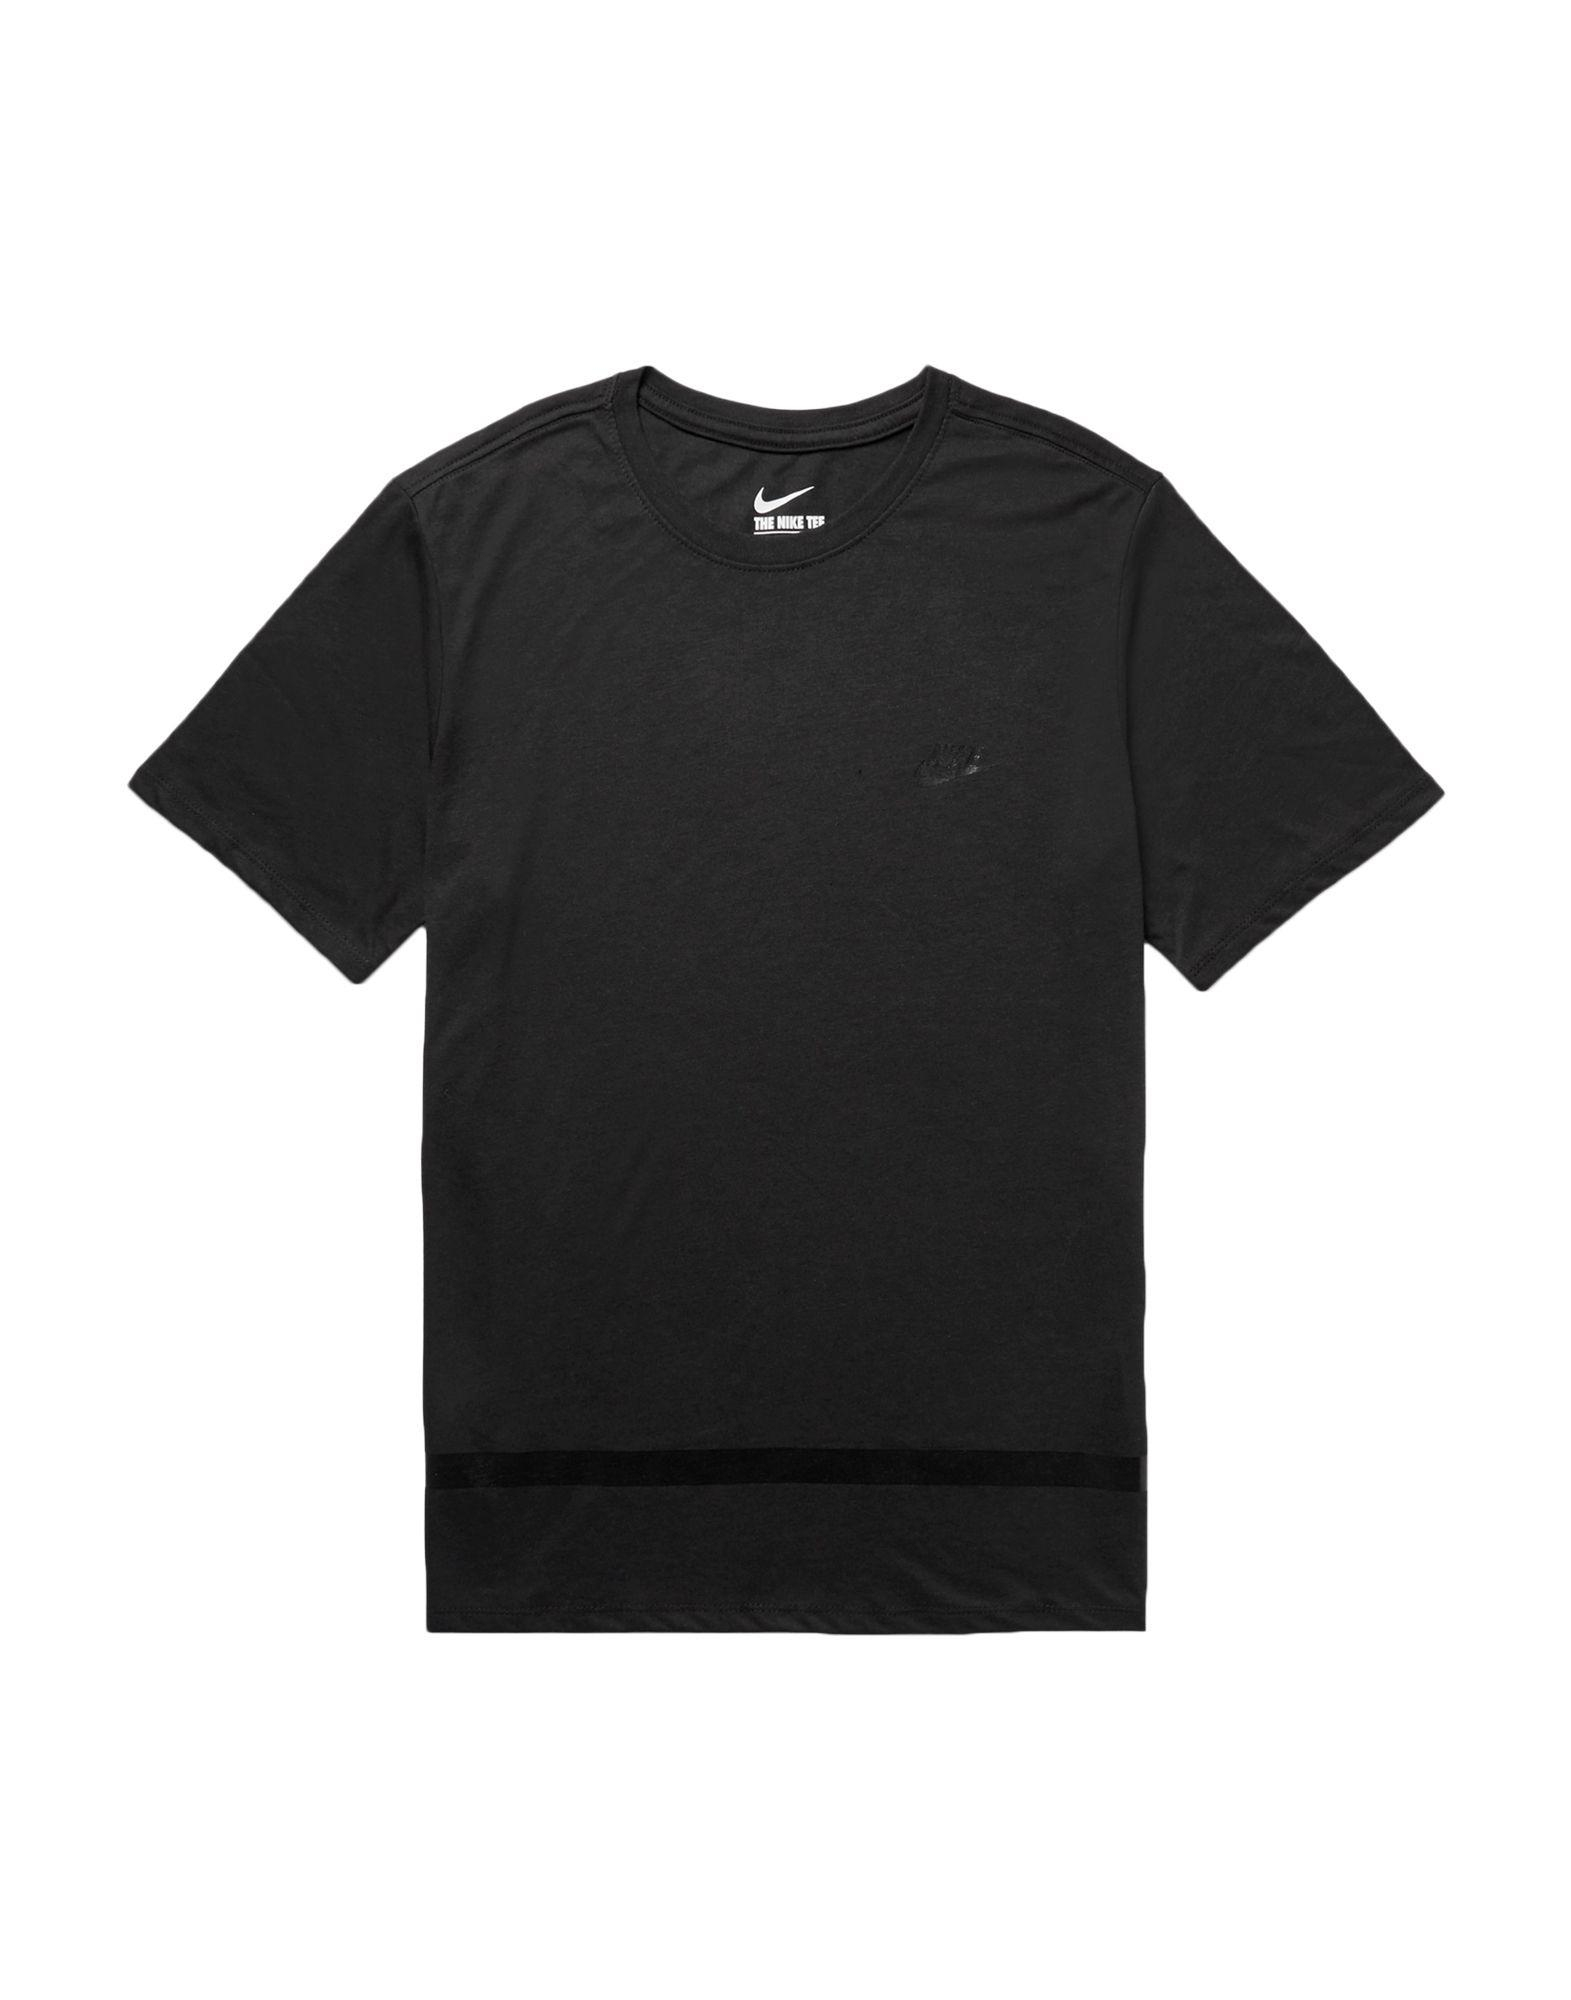 0a9a8f8fc Lyst - Nike T-shirt in Black for Men